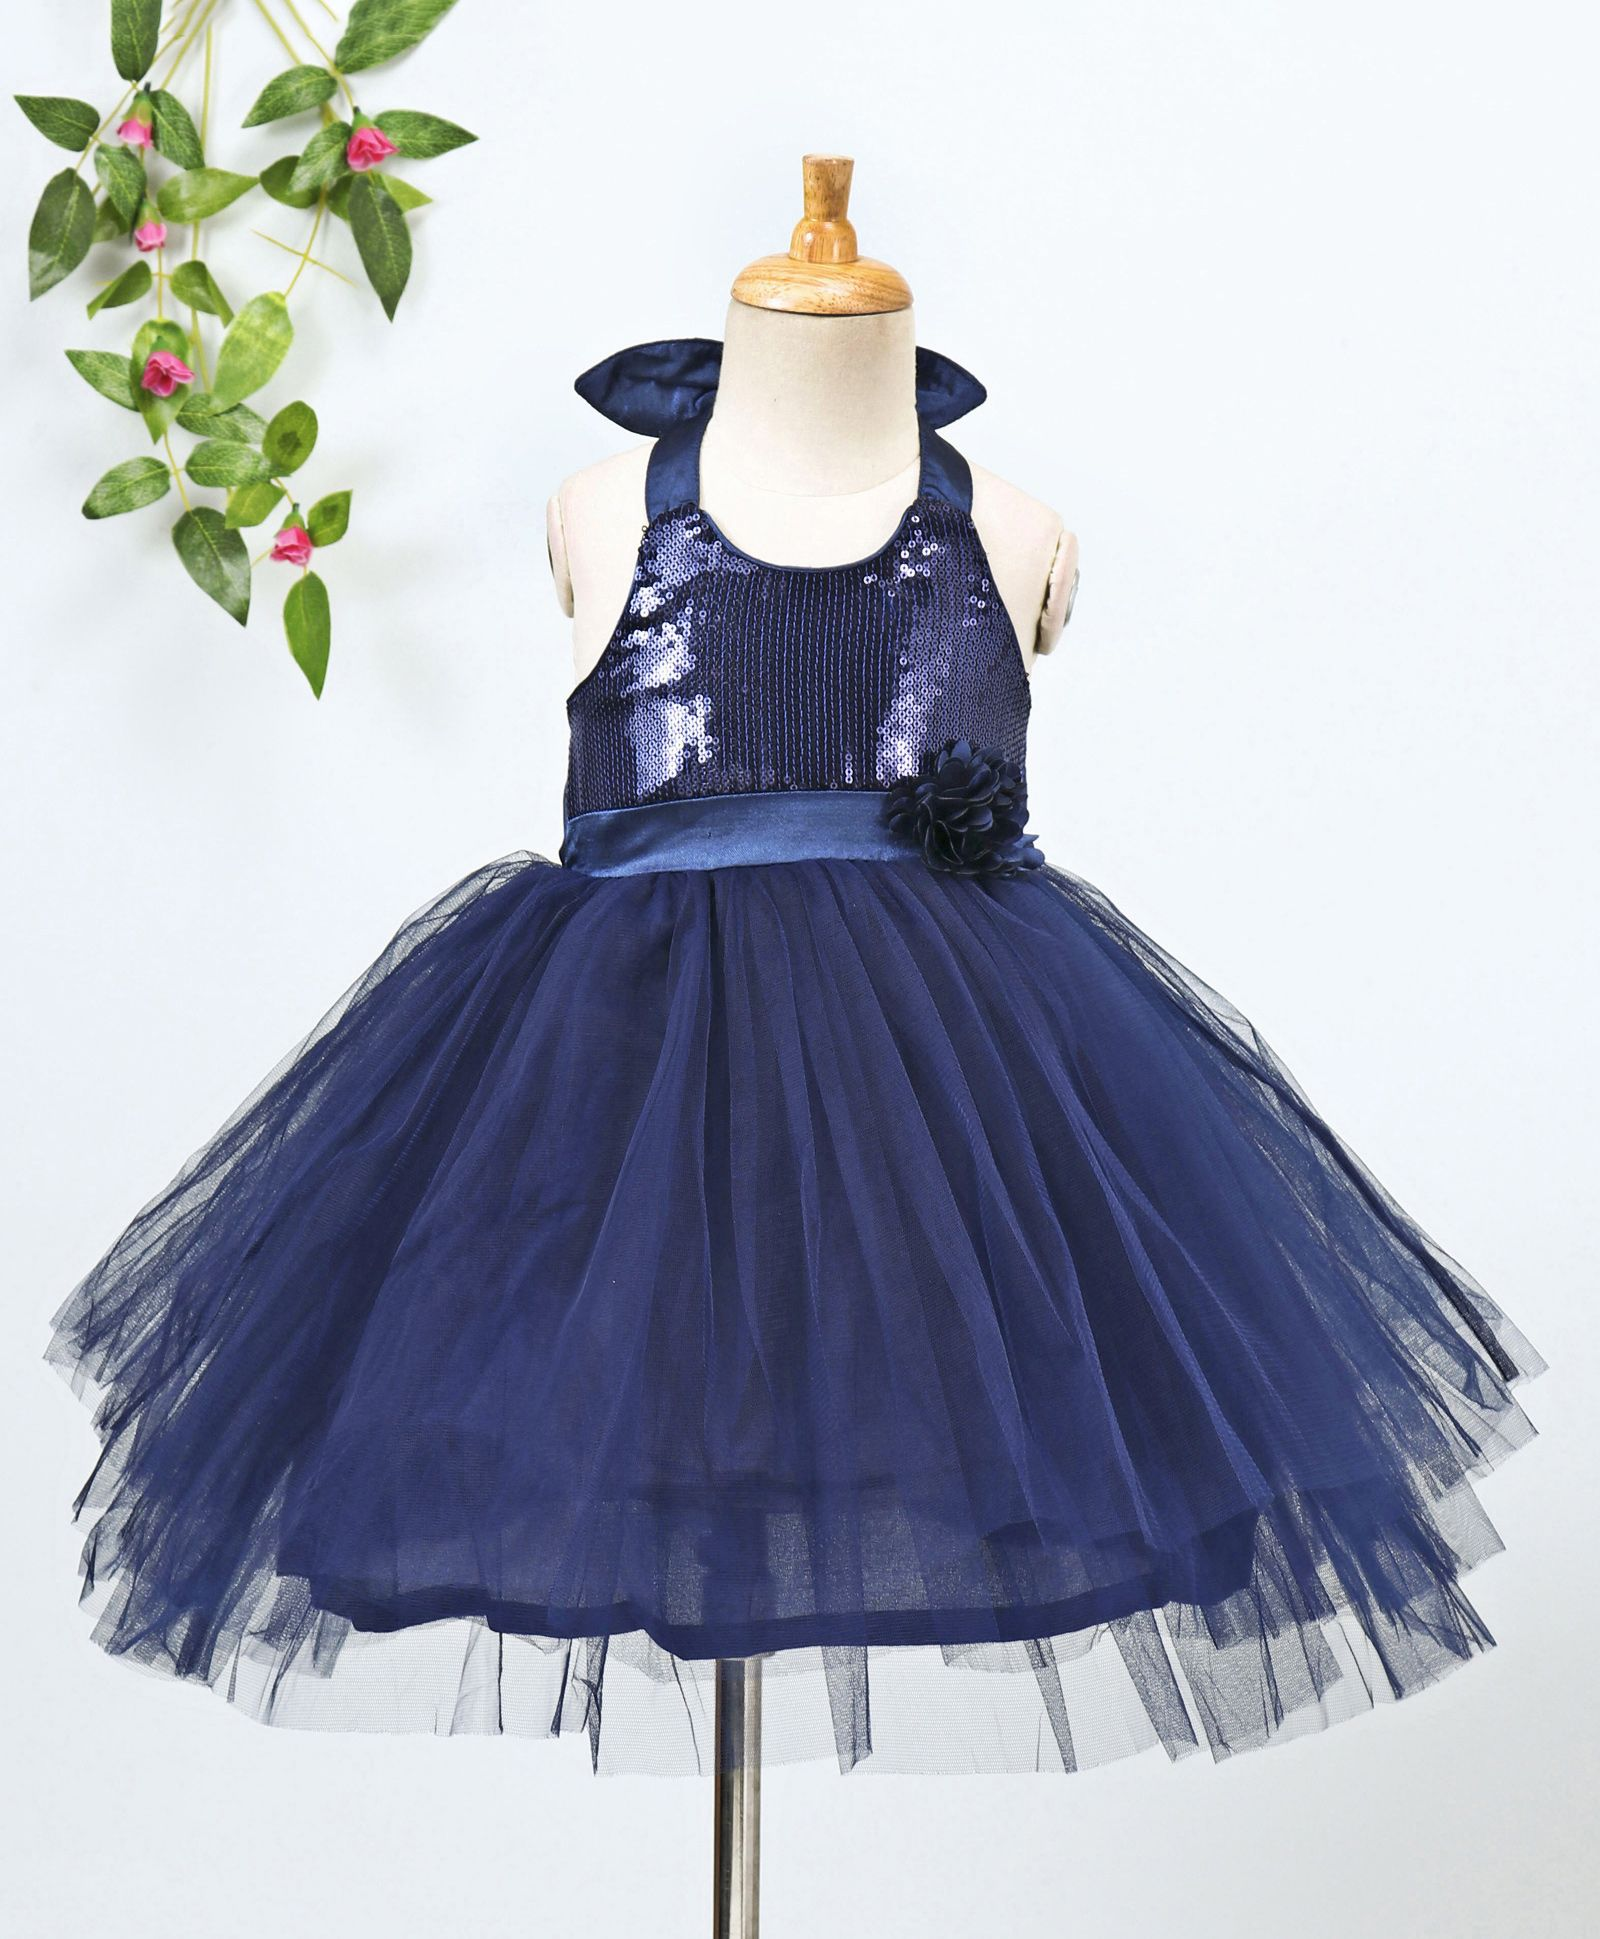 dcb38ad3 Buy Toy Balloon Flower Applique Sequin Dress Blue for Girls (7-8 ...